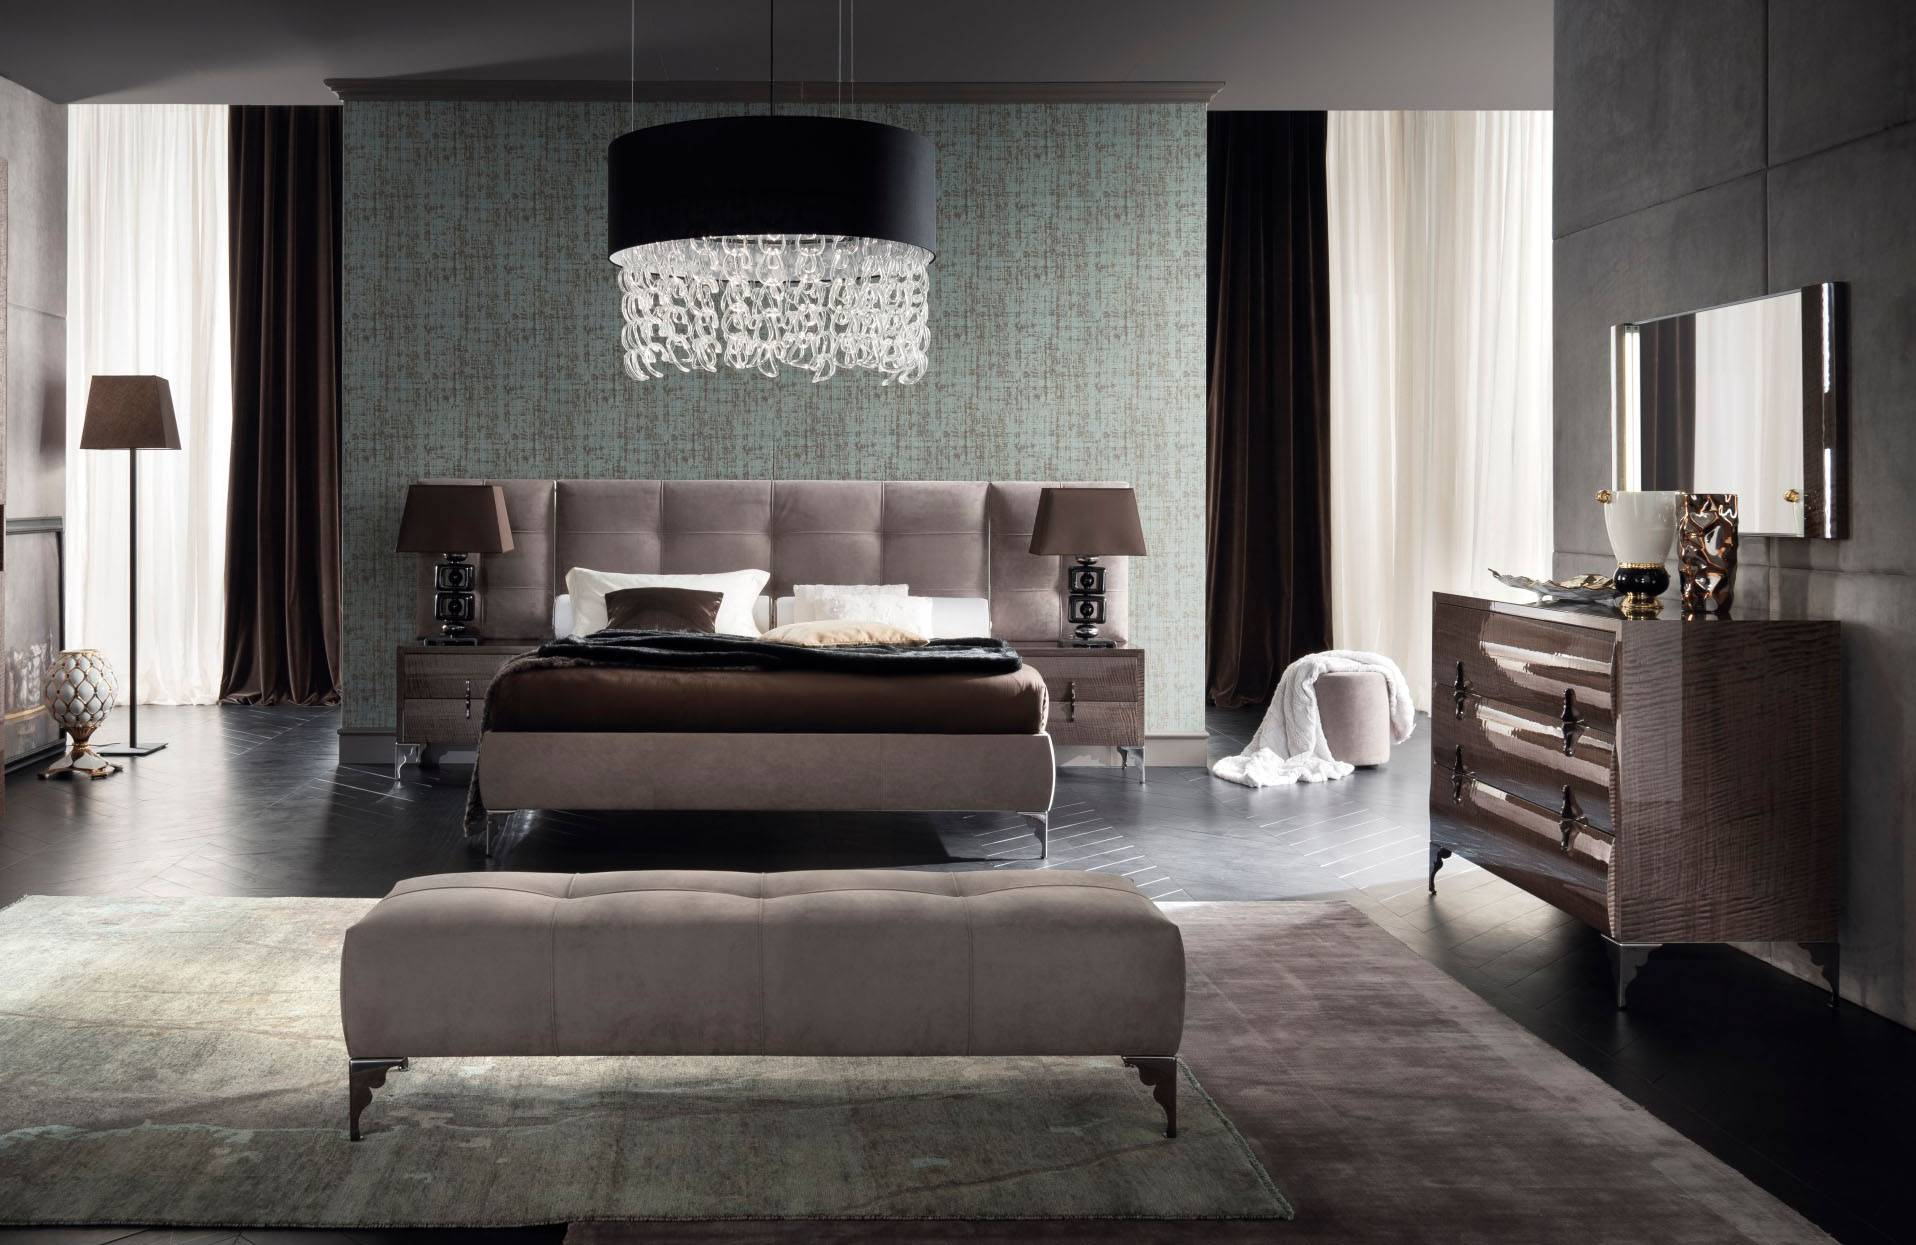 made in italy leather contemporary master bedroom designs las vegas nevada rossetto dune visone. beautiful ideas. Home Design Ideas